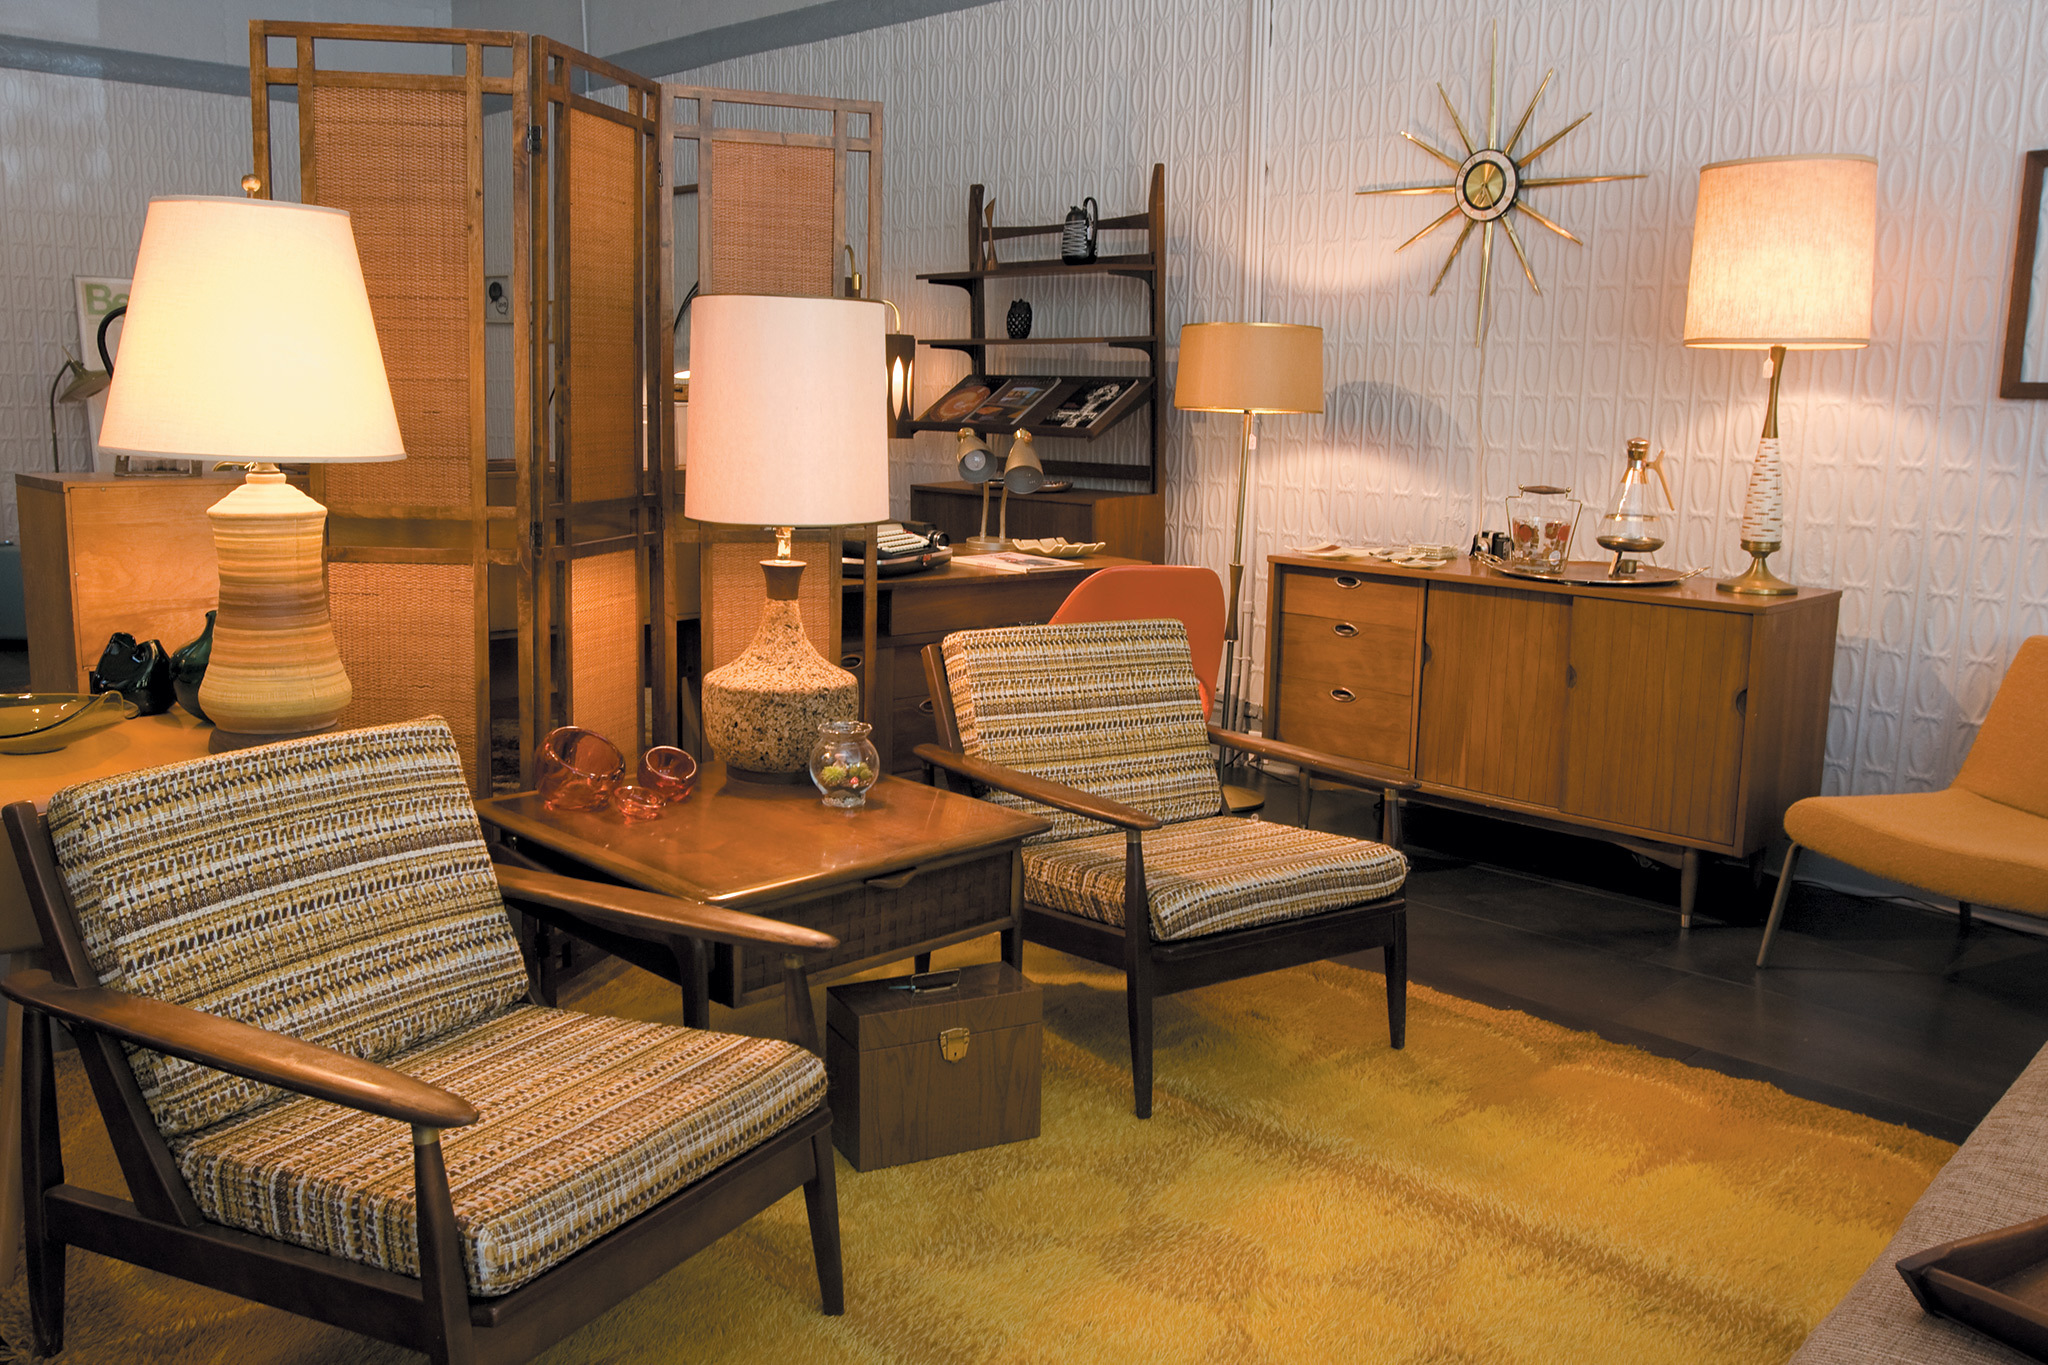 Design Furniture Chicago Furniture Stores In Chicago For Home Goods And Home Decor